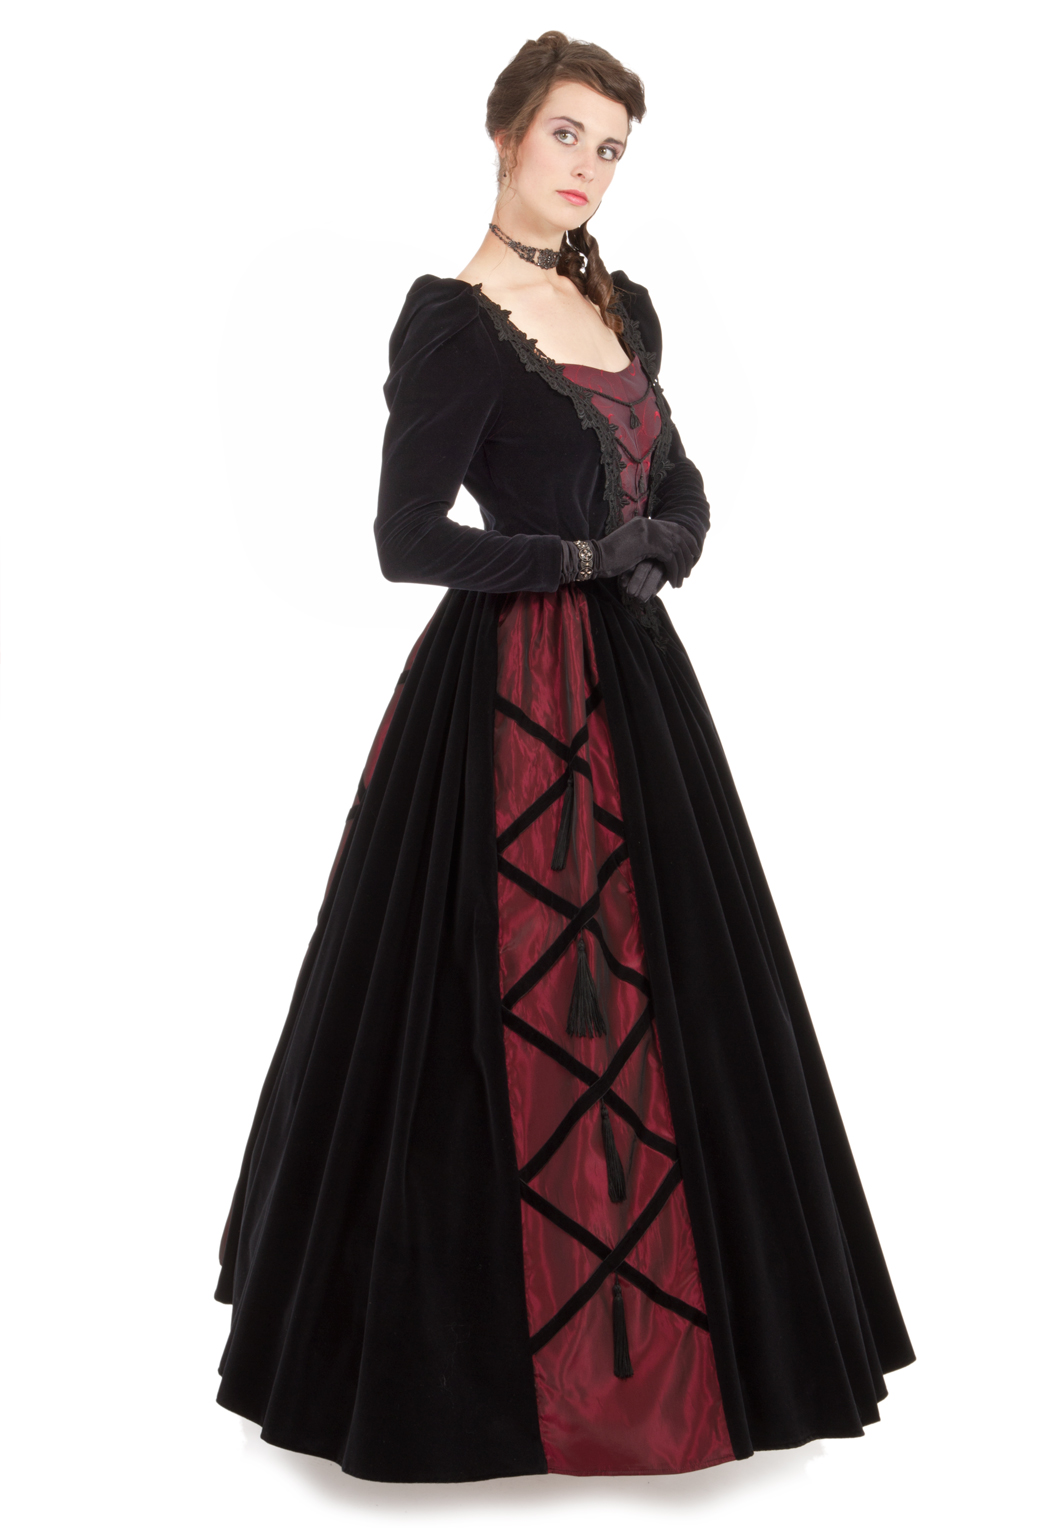 Noelle Victorian Ball Gown Recollections